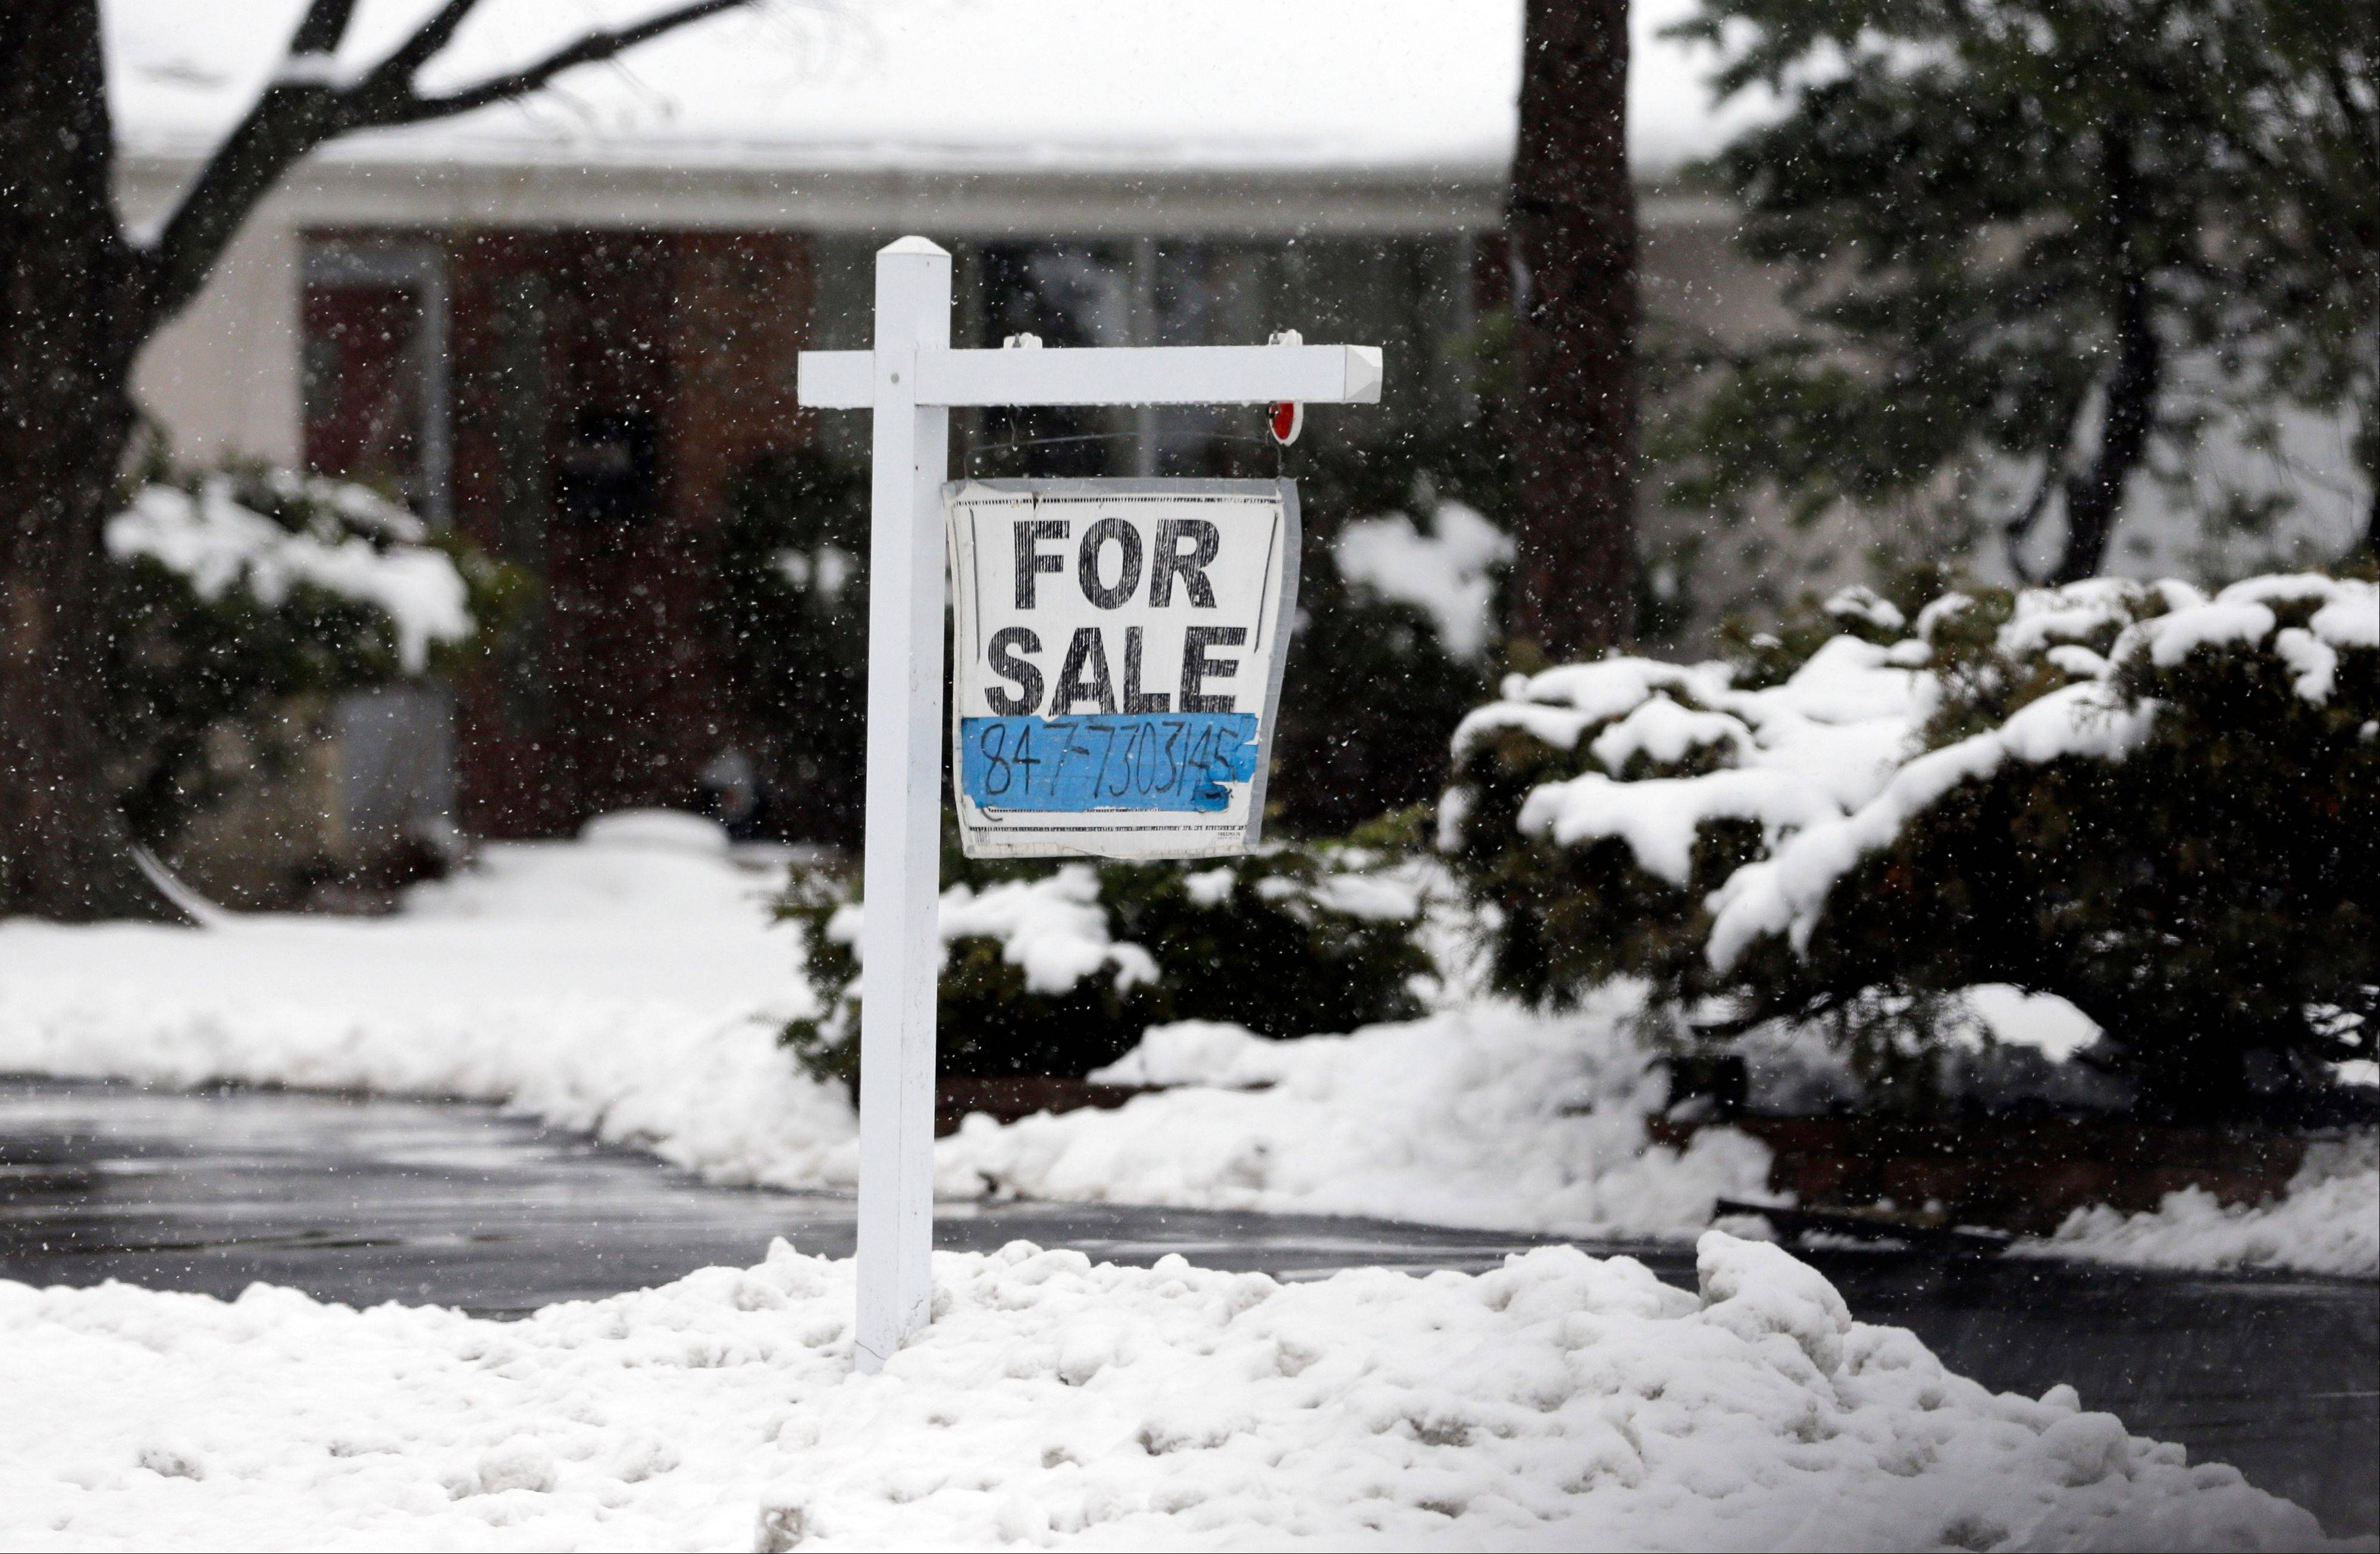 Afor sale sign hangs outside a home in Glenview. Average U.S. rates on fixed mortgages were little changed the first week of March, hovering near historic lows. The lowest mortgage rates in decades have boosted home sales and helped the market rebound.